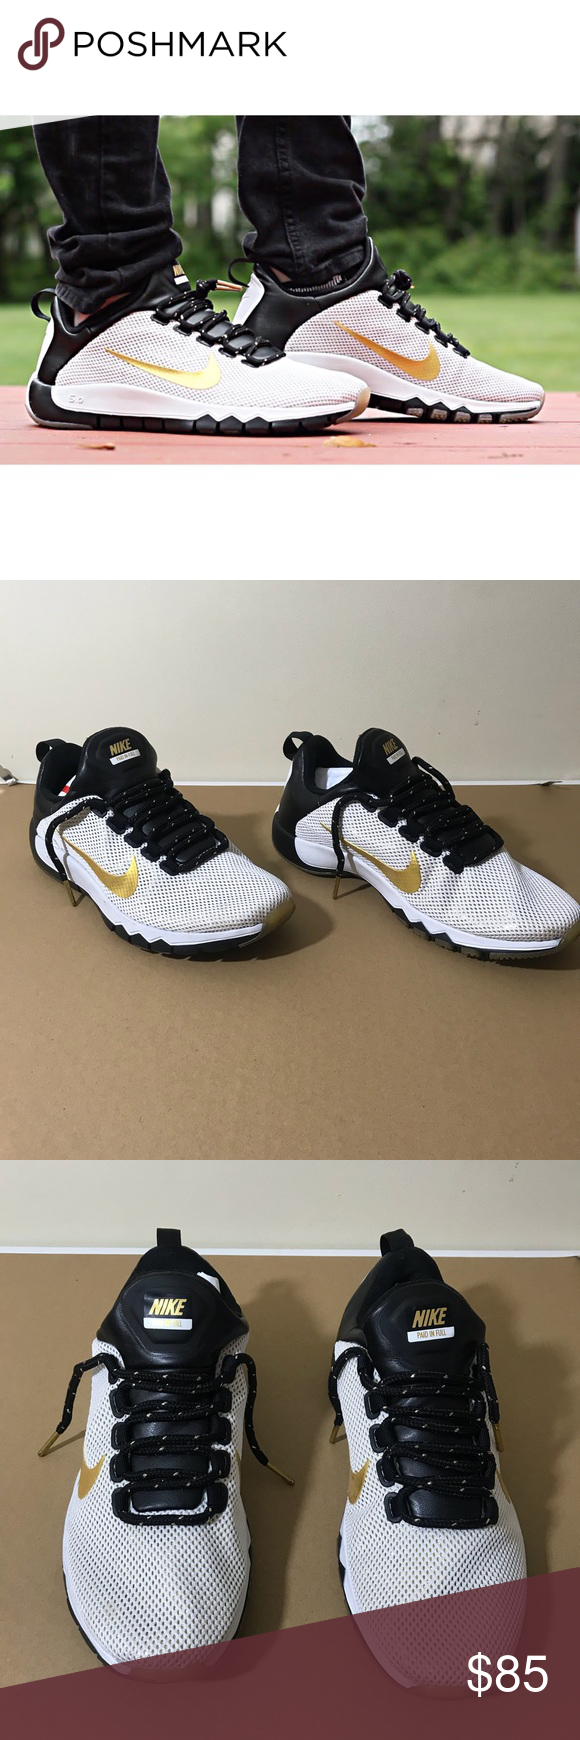 "b625620fdccd Nike free trainer 5.0 LE ""paid in full"" Like new Worn twice Perfect  condition Size 8.5 White metallic gold-black Release date 5 8 14 Nike Shoes  Sneakers"